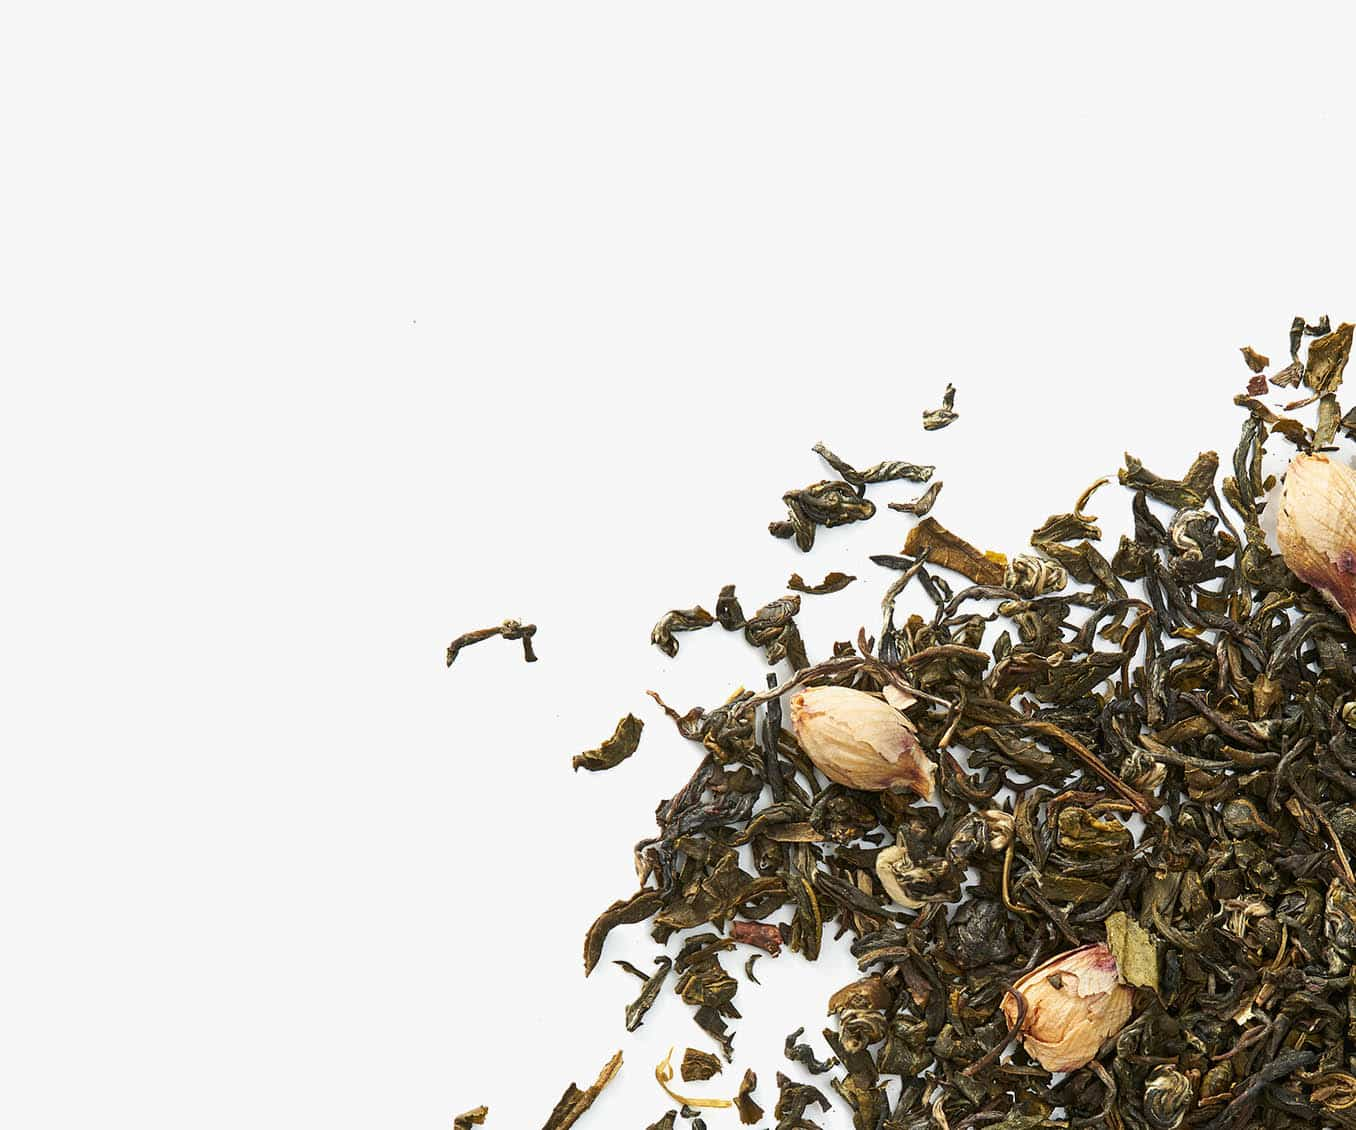 Loose leaf white tea placed in the bottom right corner on a white background.